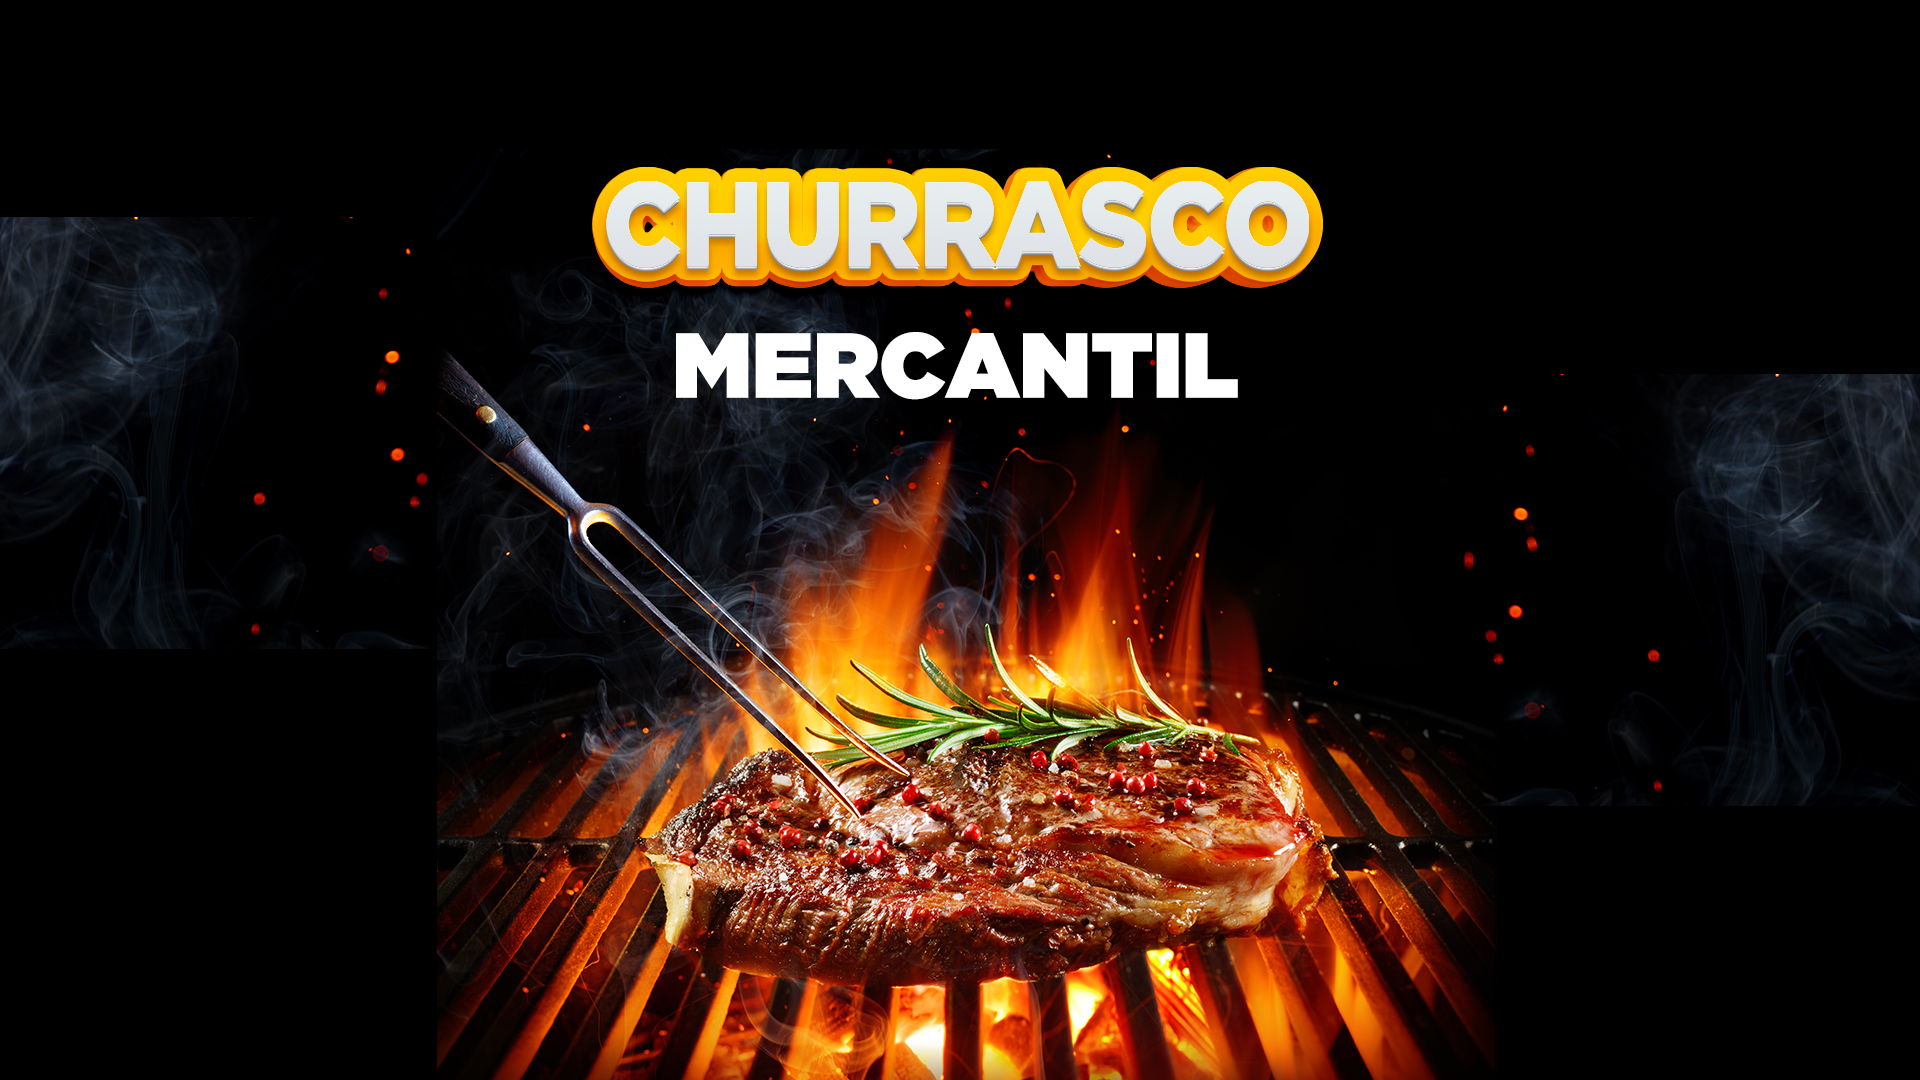 CHURRASCO MERCANTIL - mobile